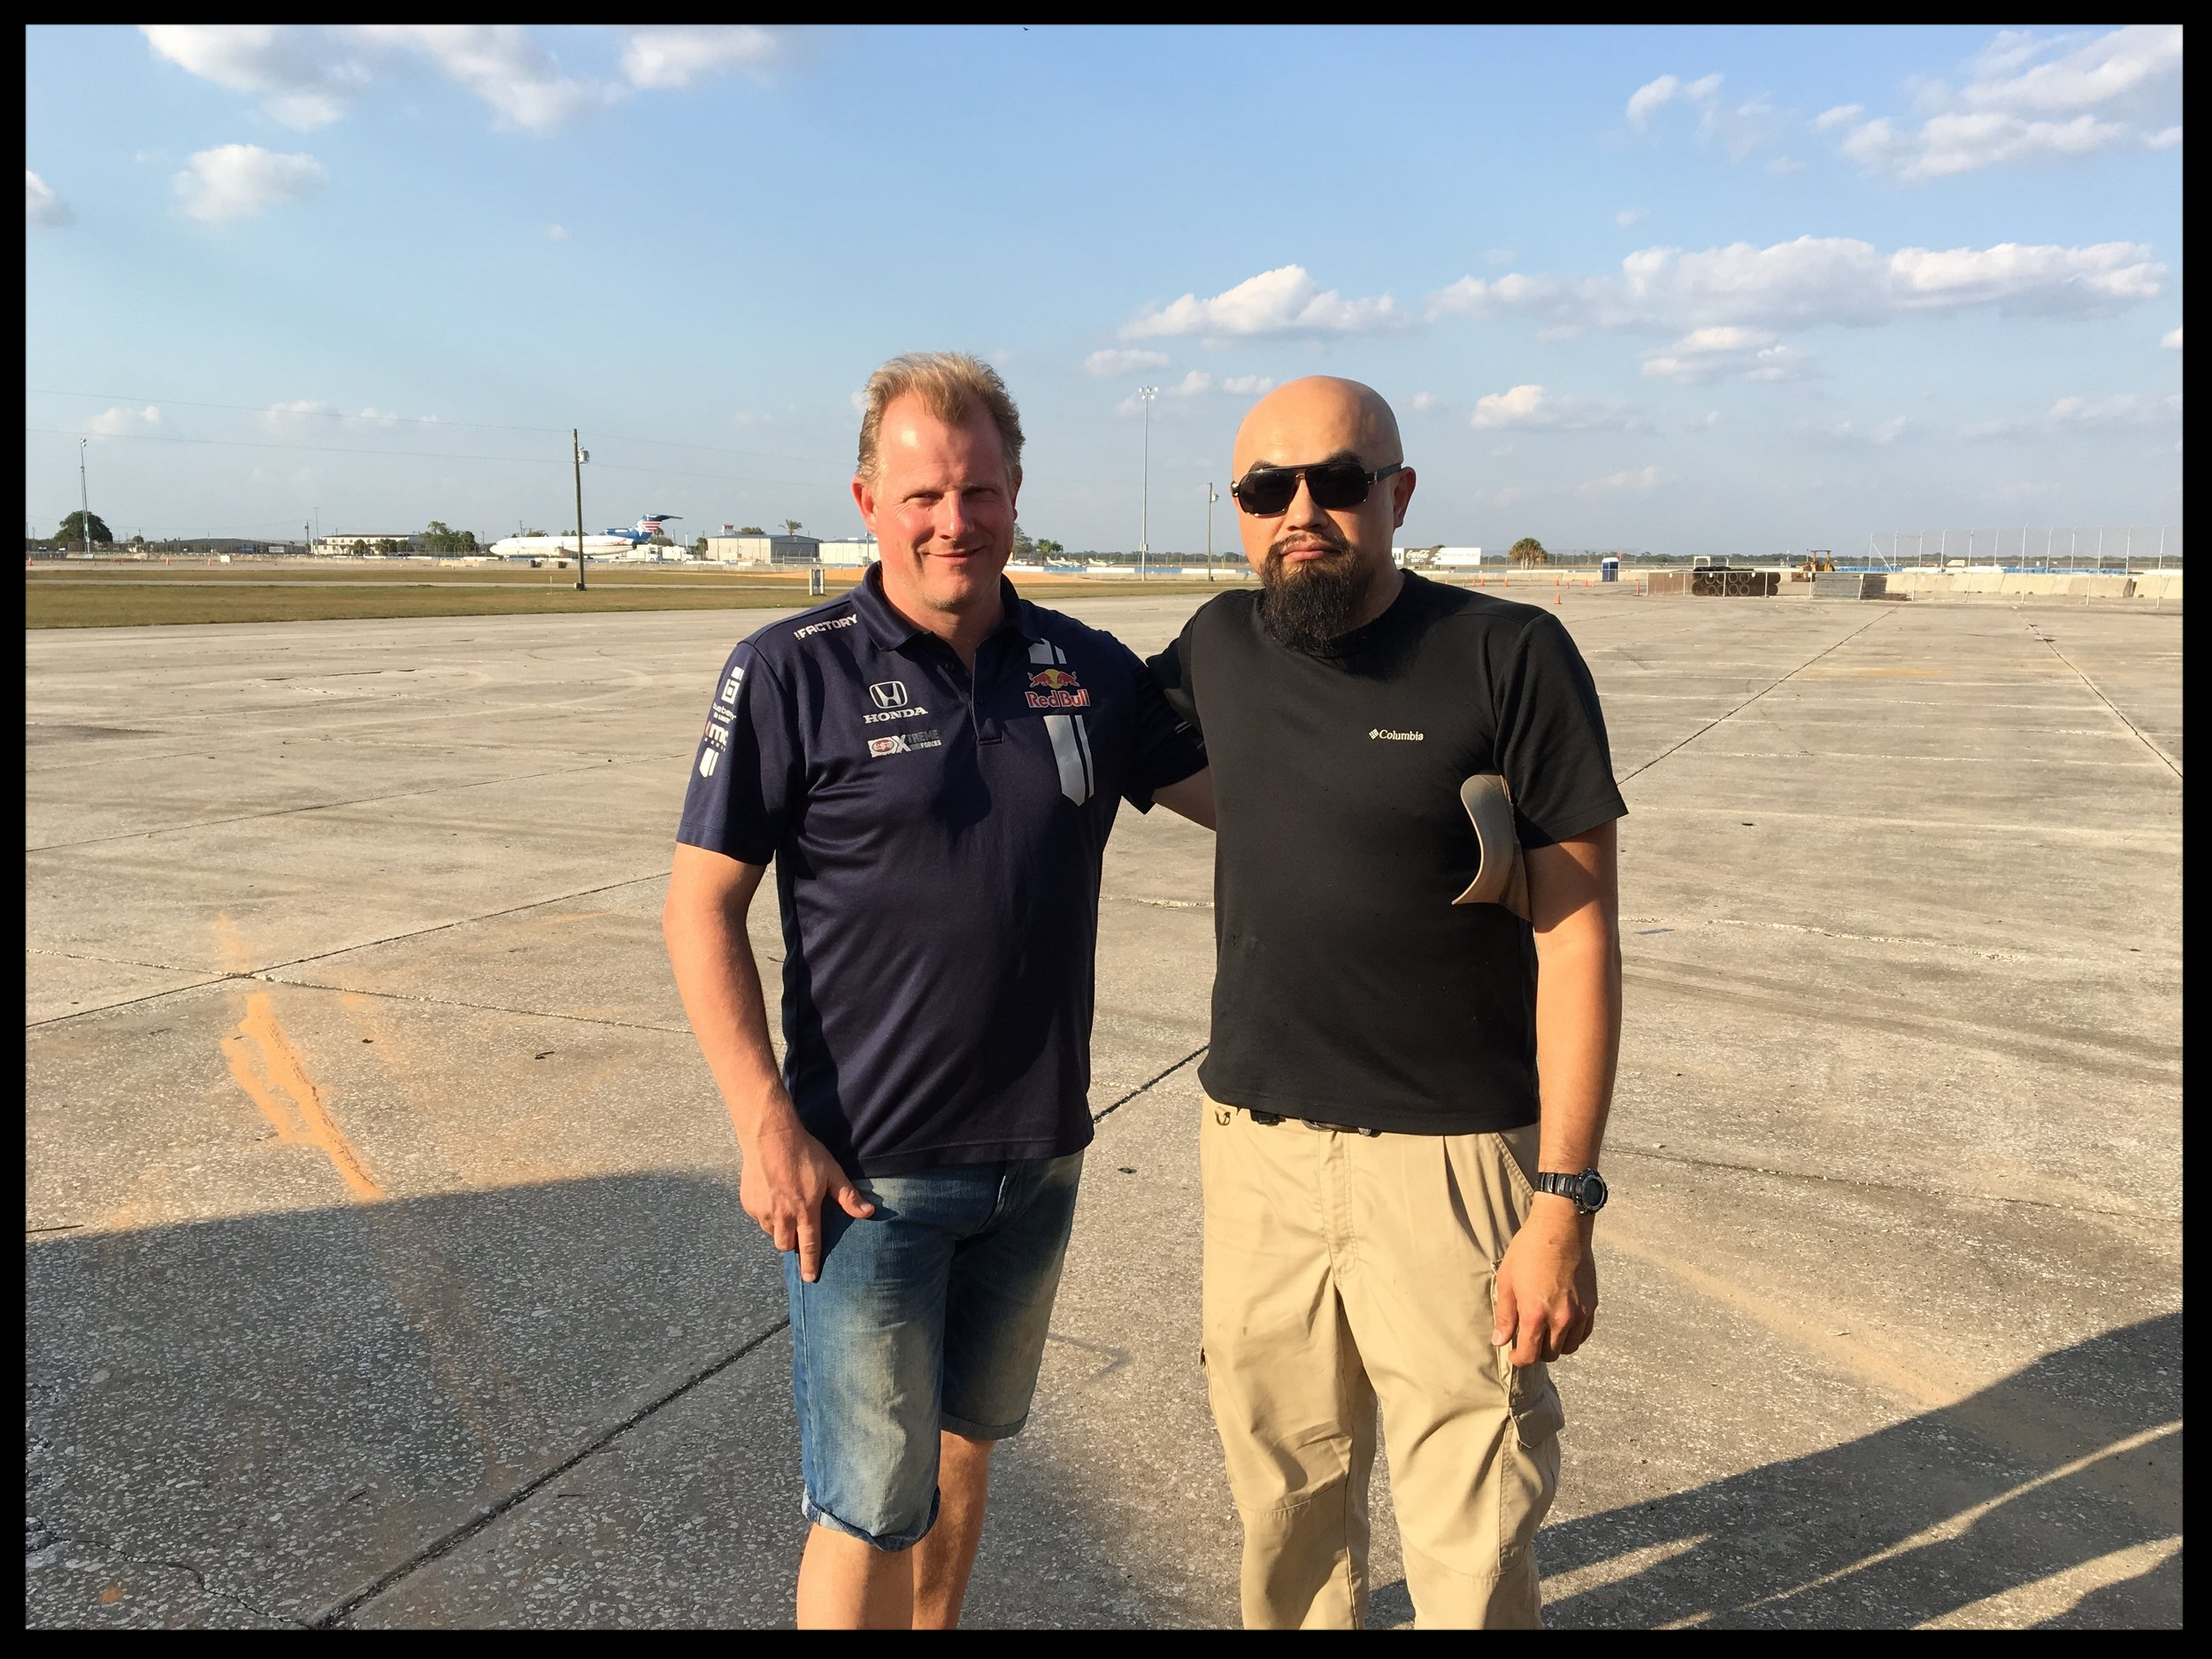 ME WITH OMSE RACE TEAM OWNER ANDREAS ERIKKSON AT SEBRING RACEWAY. ANDREAS WAS QUITE GENEROUS WITH US AND HIS INCREDIBLE SPEEDY TEAM HELPED ME RIG UP MY MULTIPLE MICROPHONES AND CABLES. THANK YOU ANDREAS AND TEAM!!